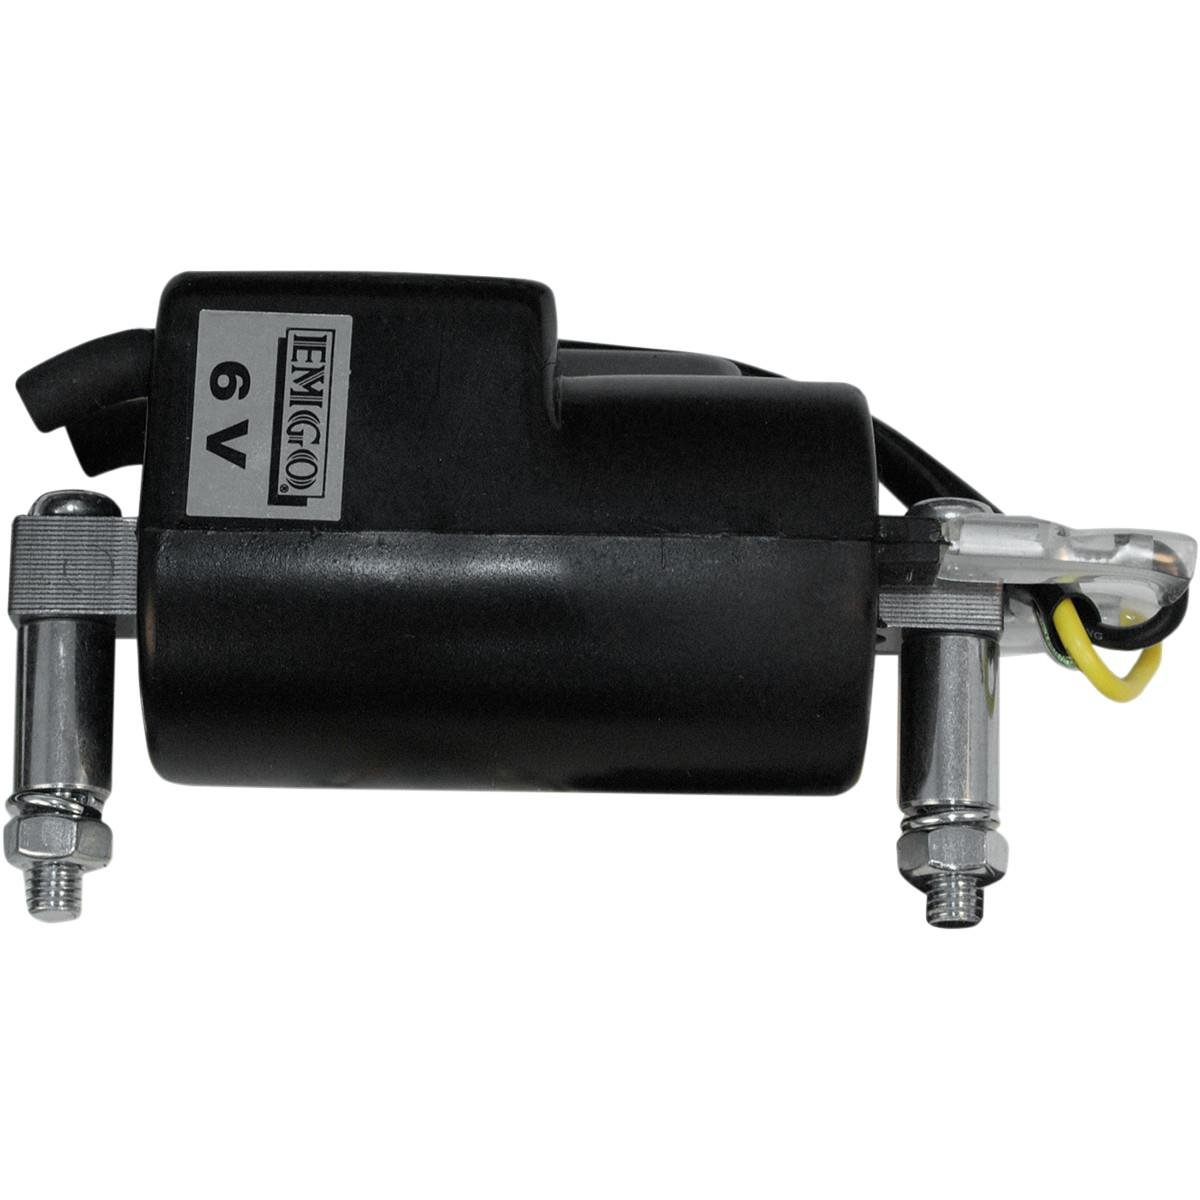 61Q1o9nZ2 L._SL1200_ amazon com emgo universal ignition coil 24 72454 automotive emgo coil wire diagram at bayanpartner.co